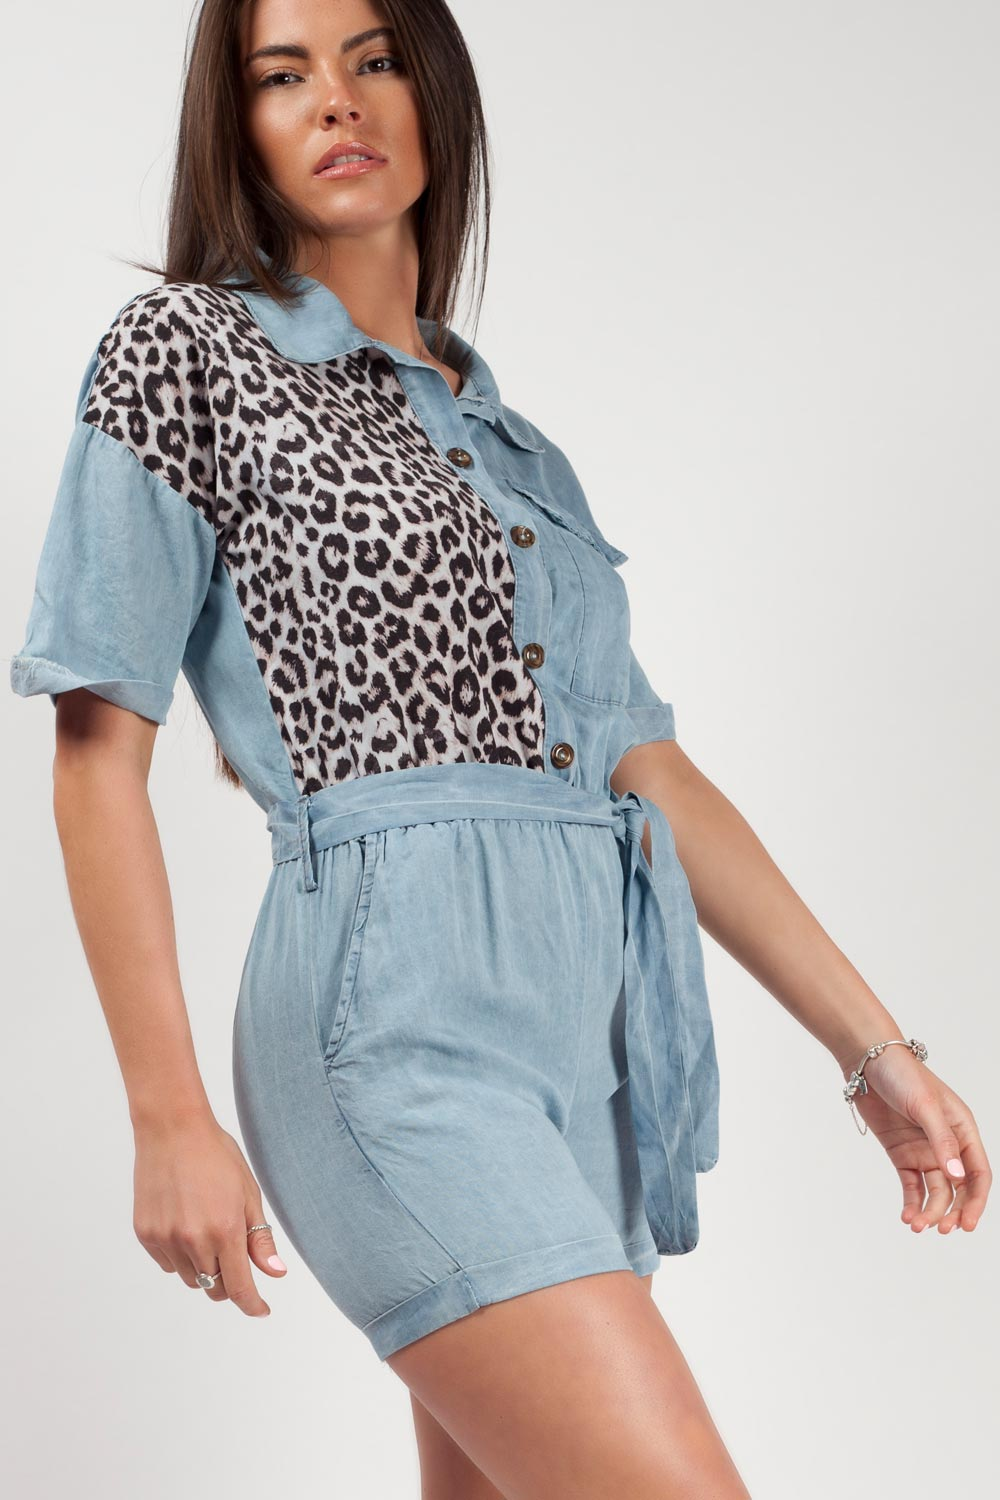 denim playsuit uk